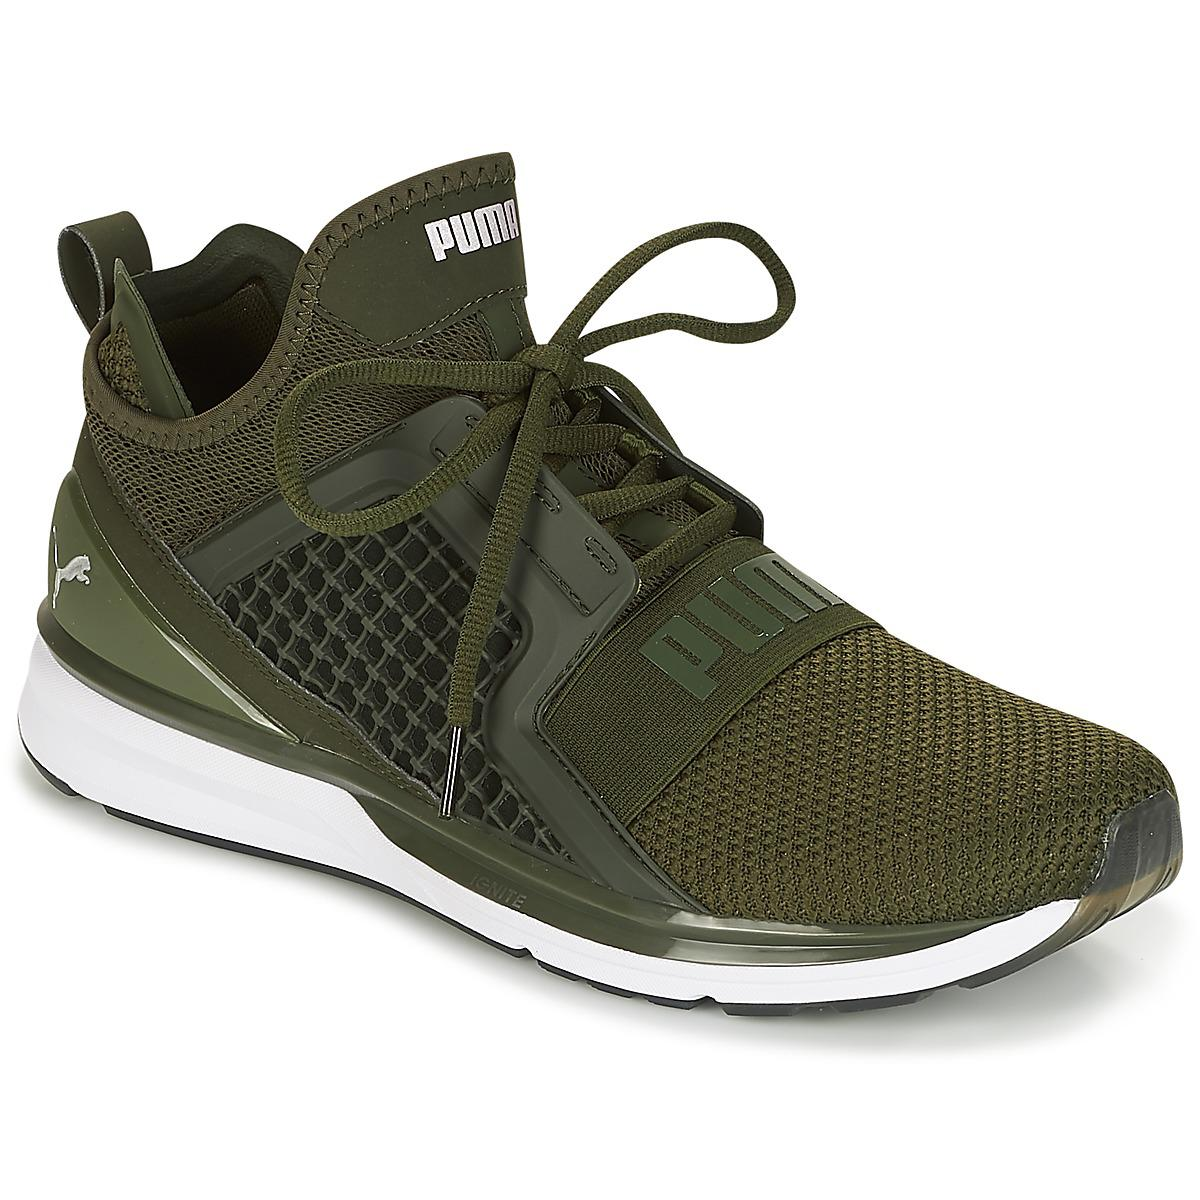 PUMA Ignite Limitless Weave Men s Running Trainers In Green in Green ... 4025744bd